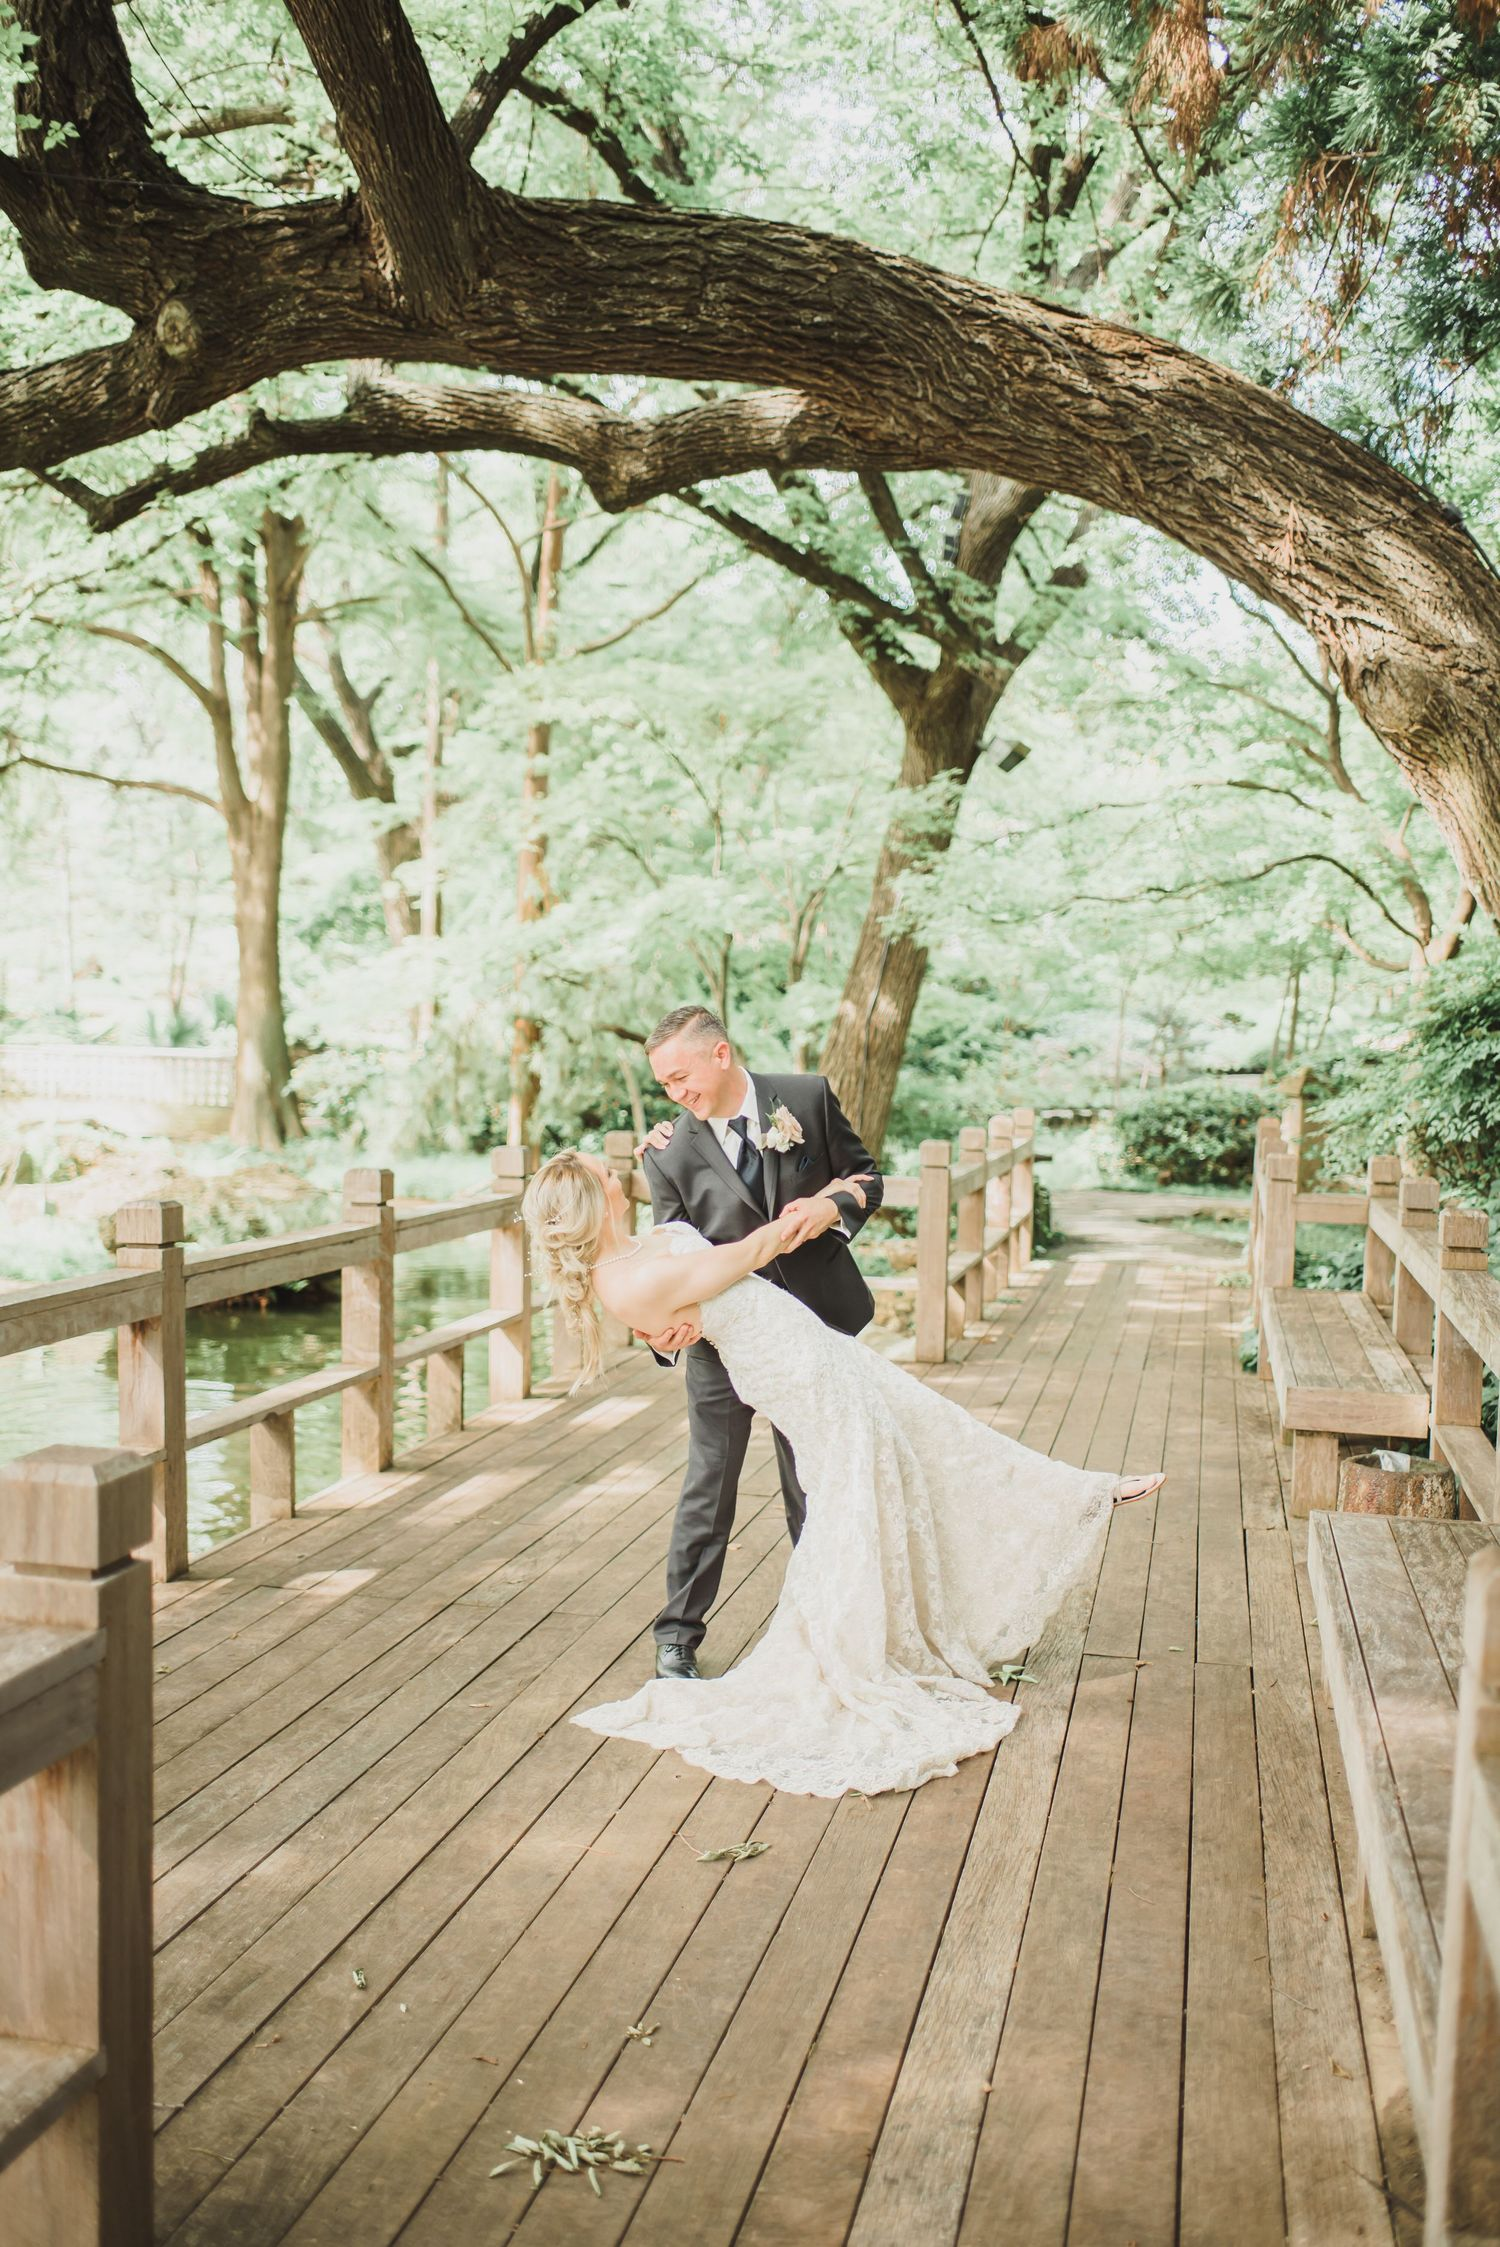 wedding photo at The Japanese Garden — Fort Worth Botanic Garden